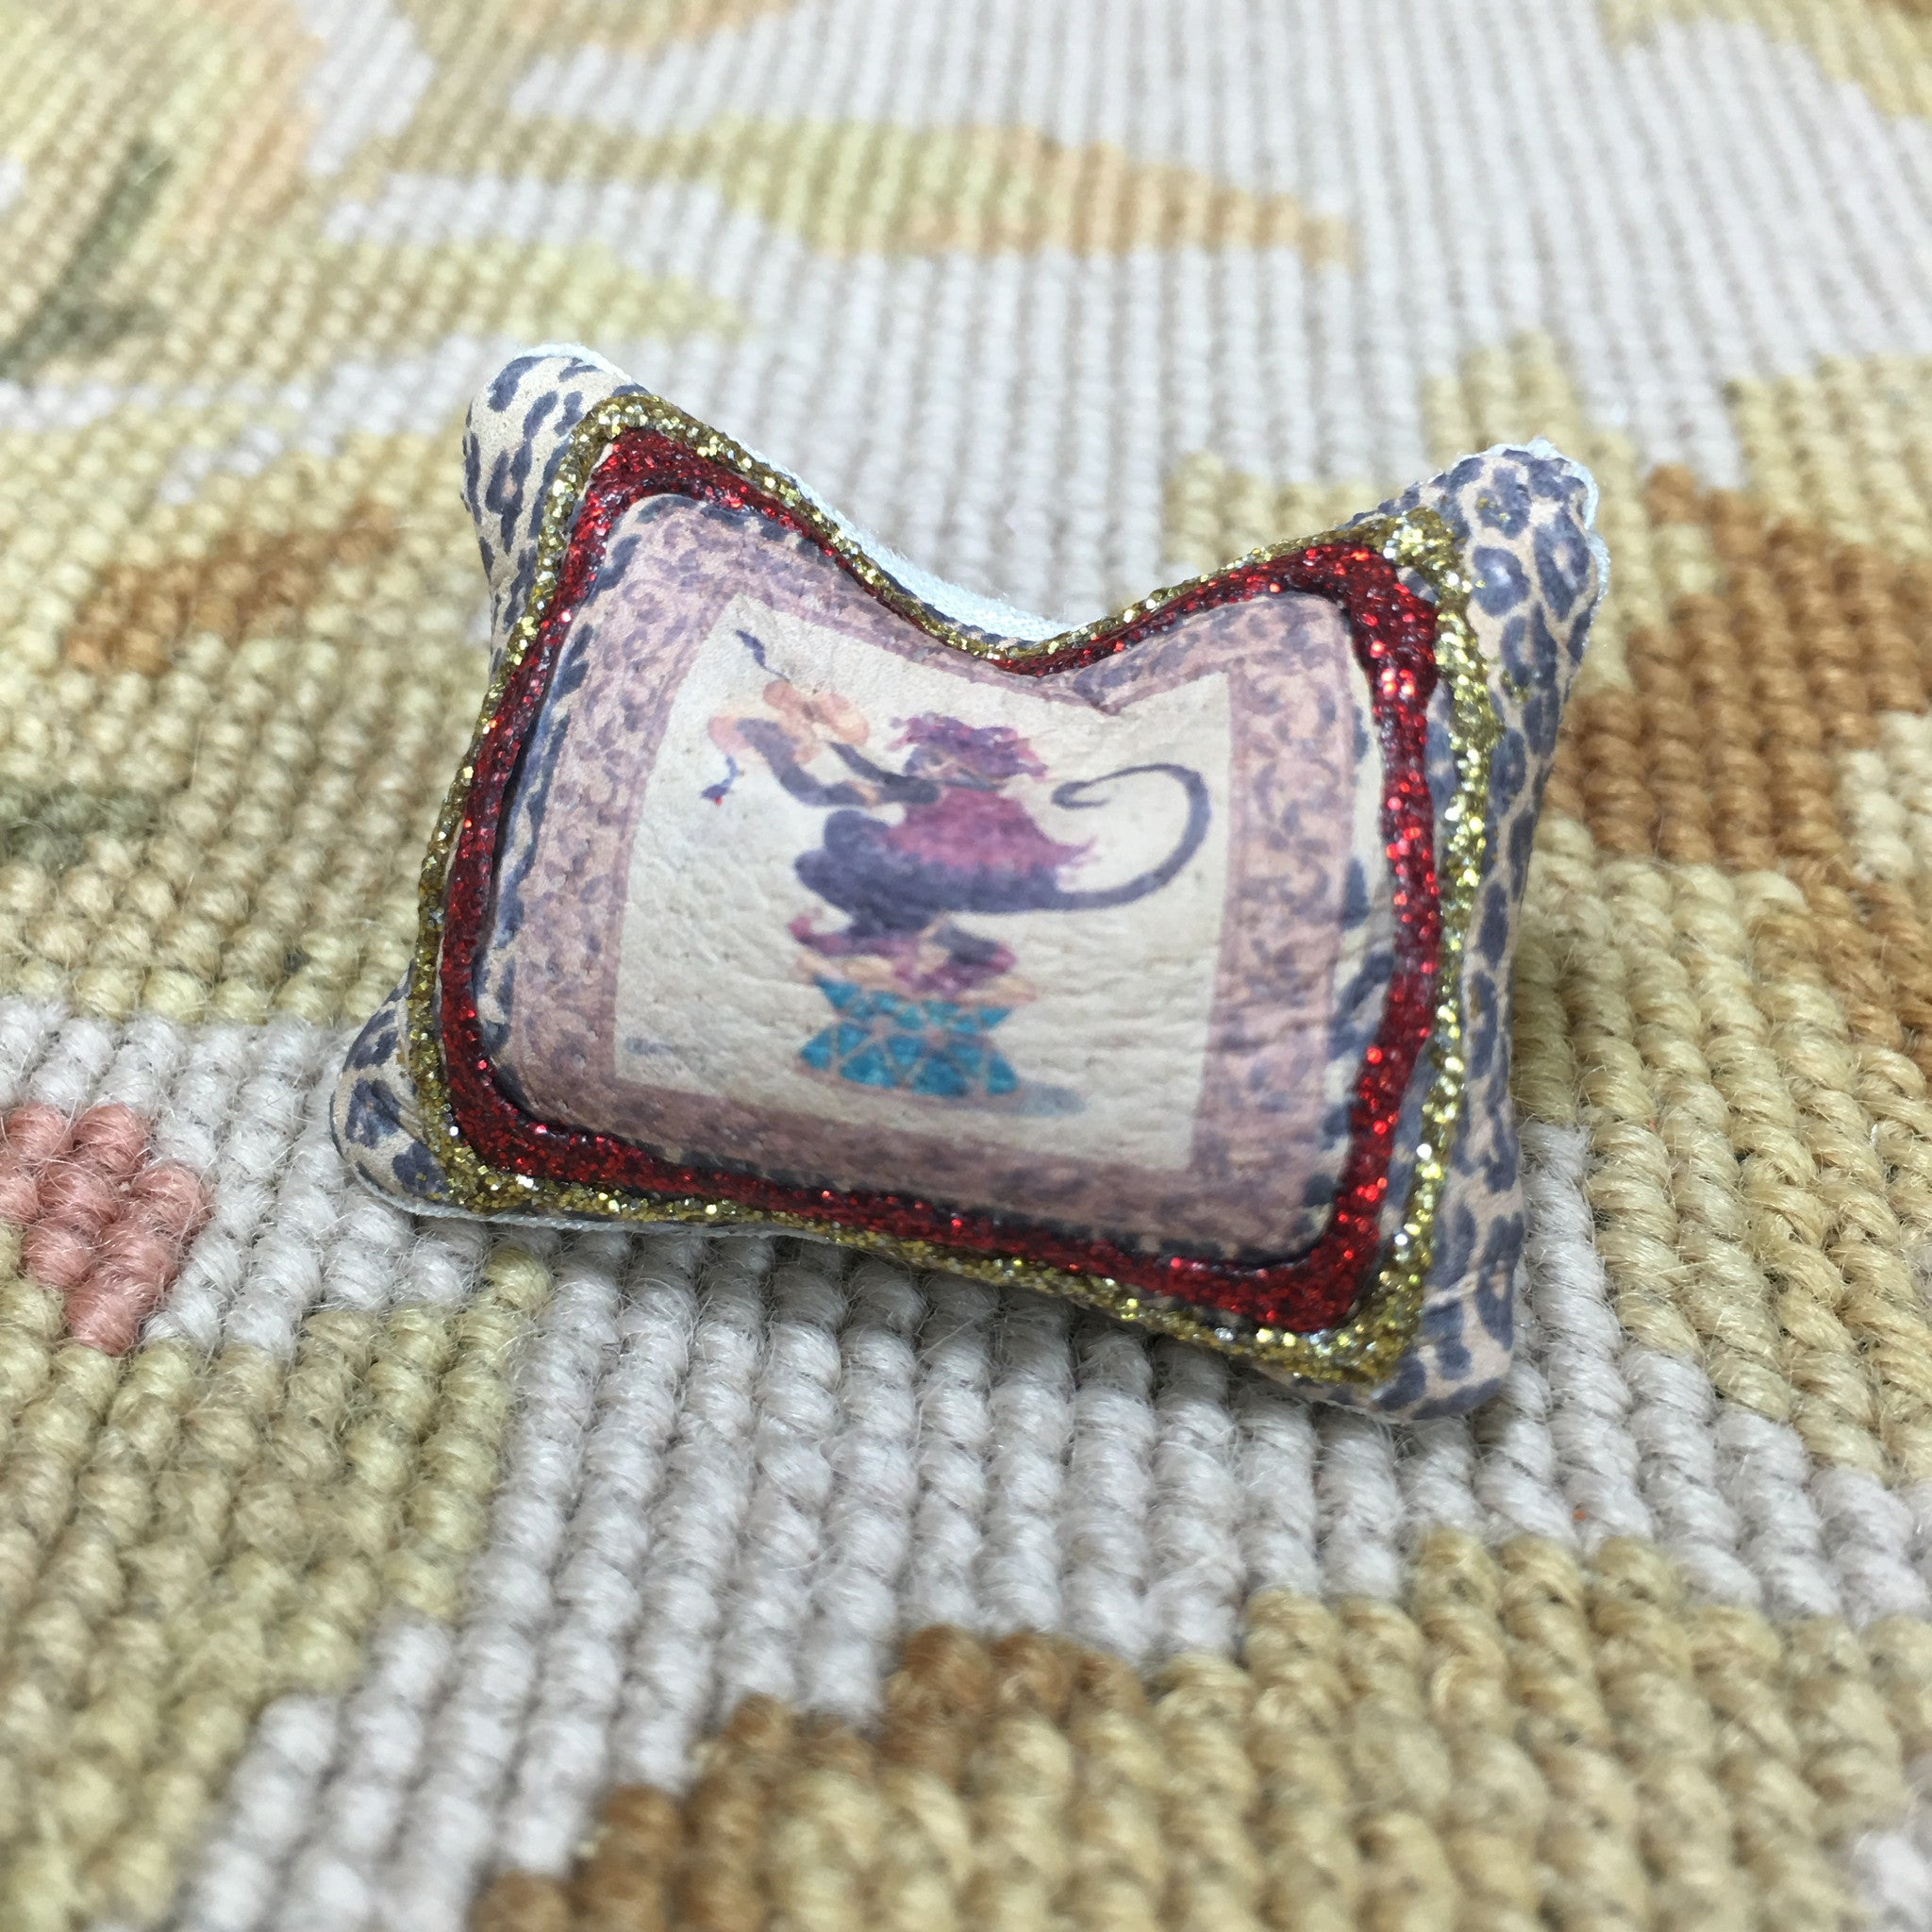 Pillow Cushion Monkey #2 - 1:12 Dollhouse Miniature